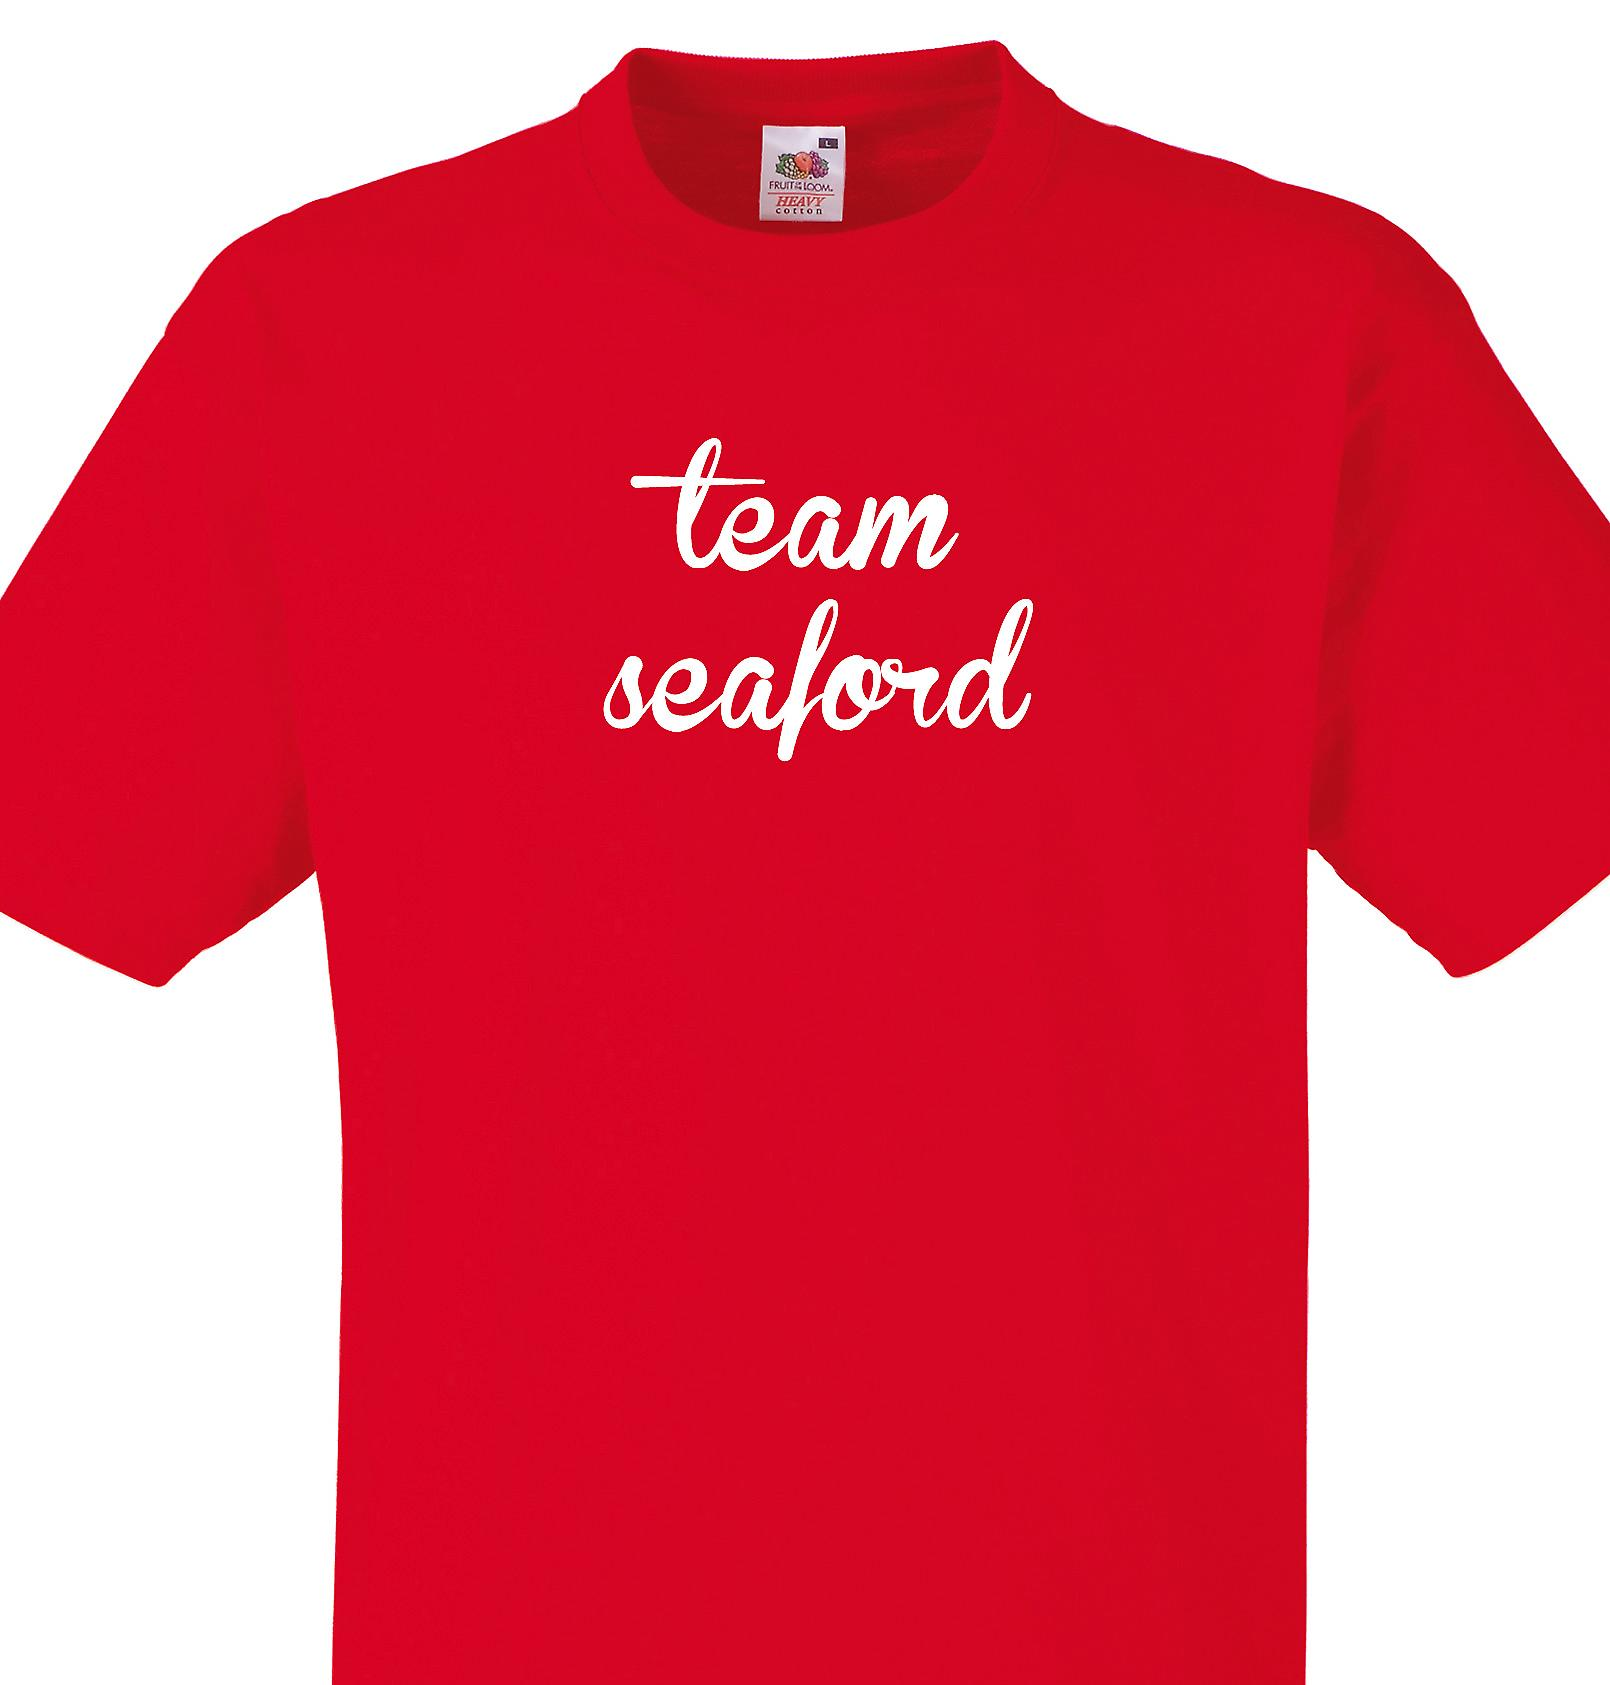 Team Seaford Red T shirt